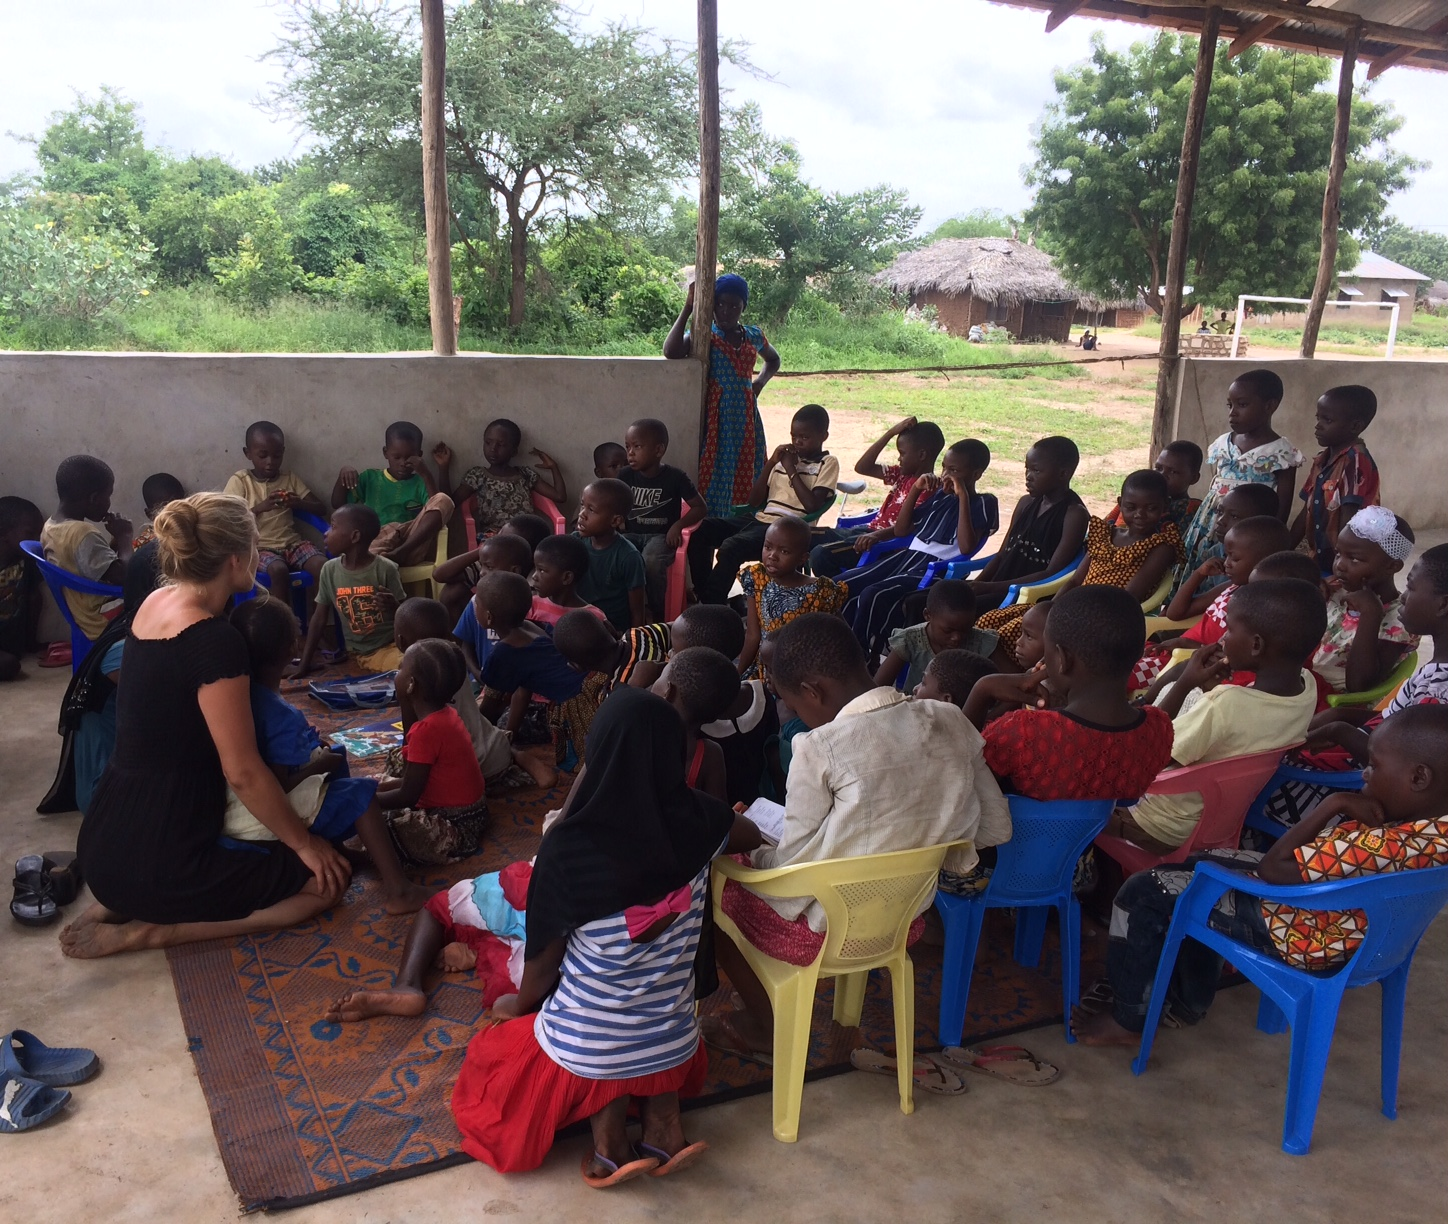 Children piled together for our ever-growing sunday school class, where many children are first hearing about the good news and the hope found in Jesus.